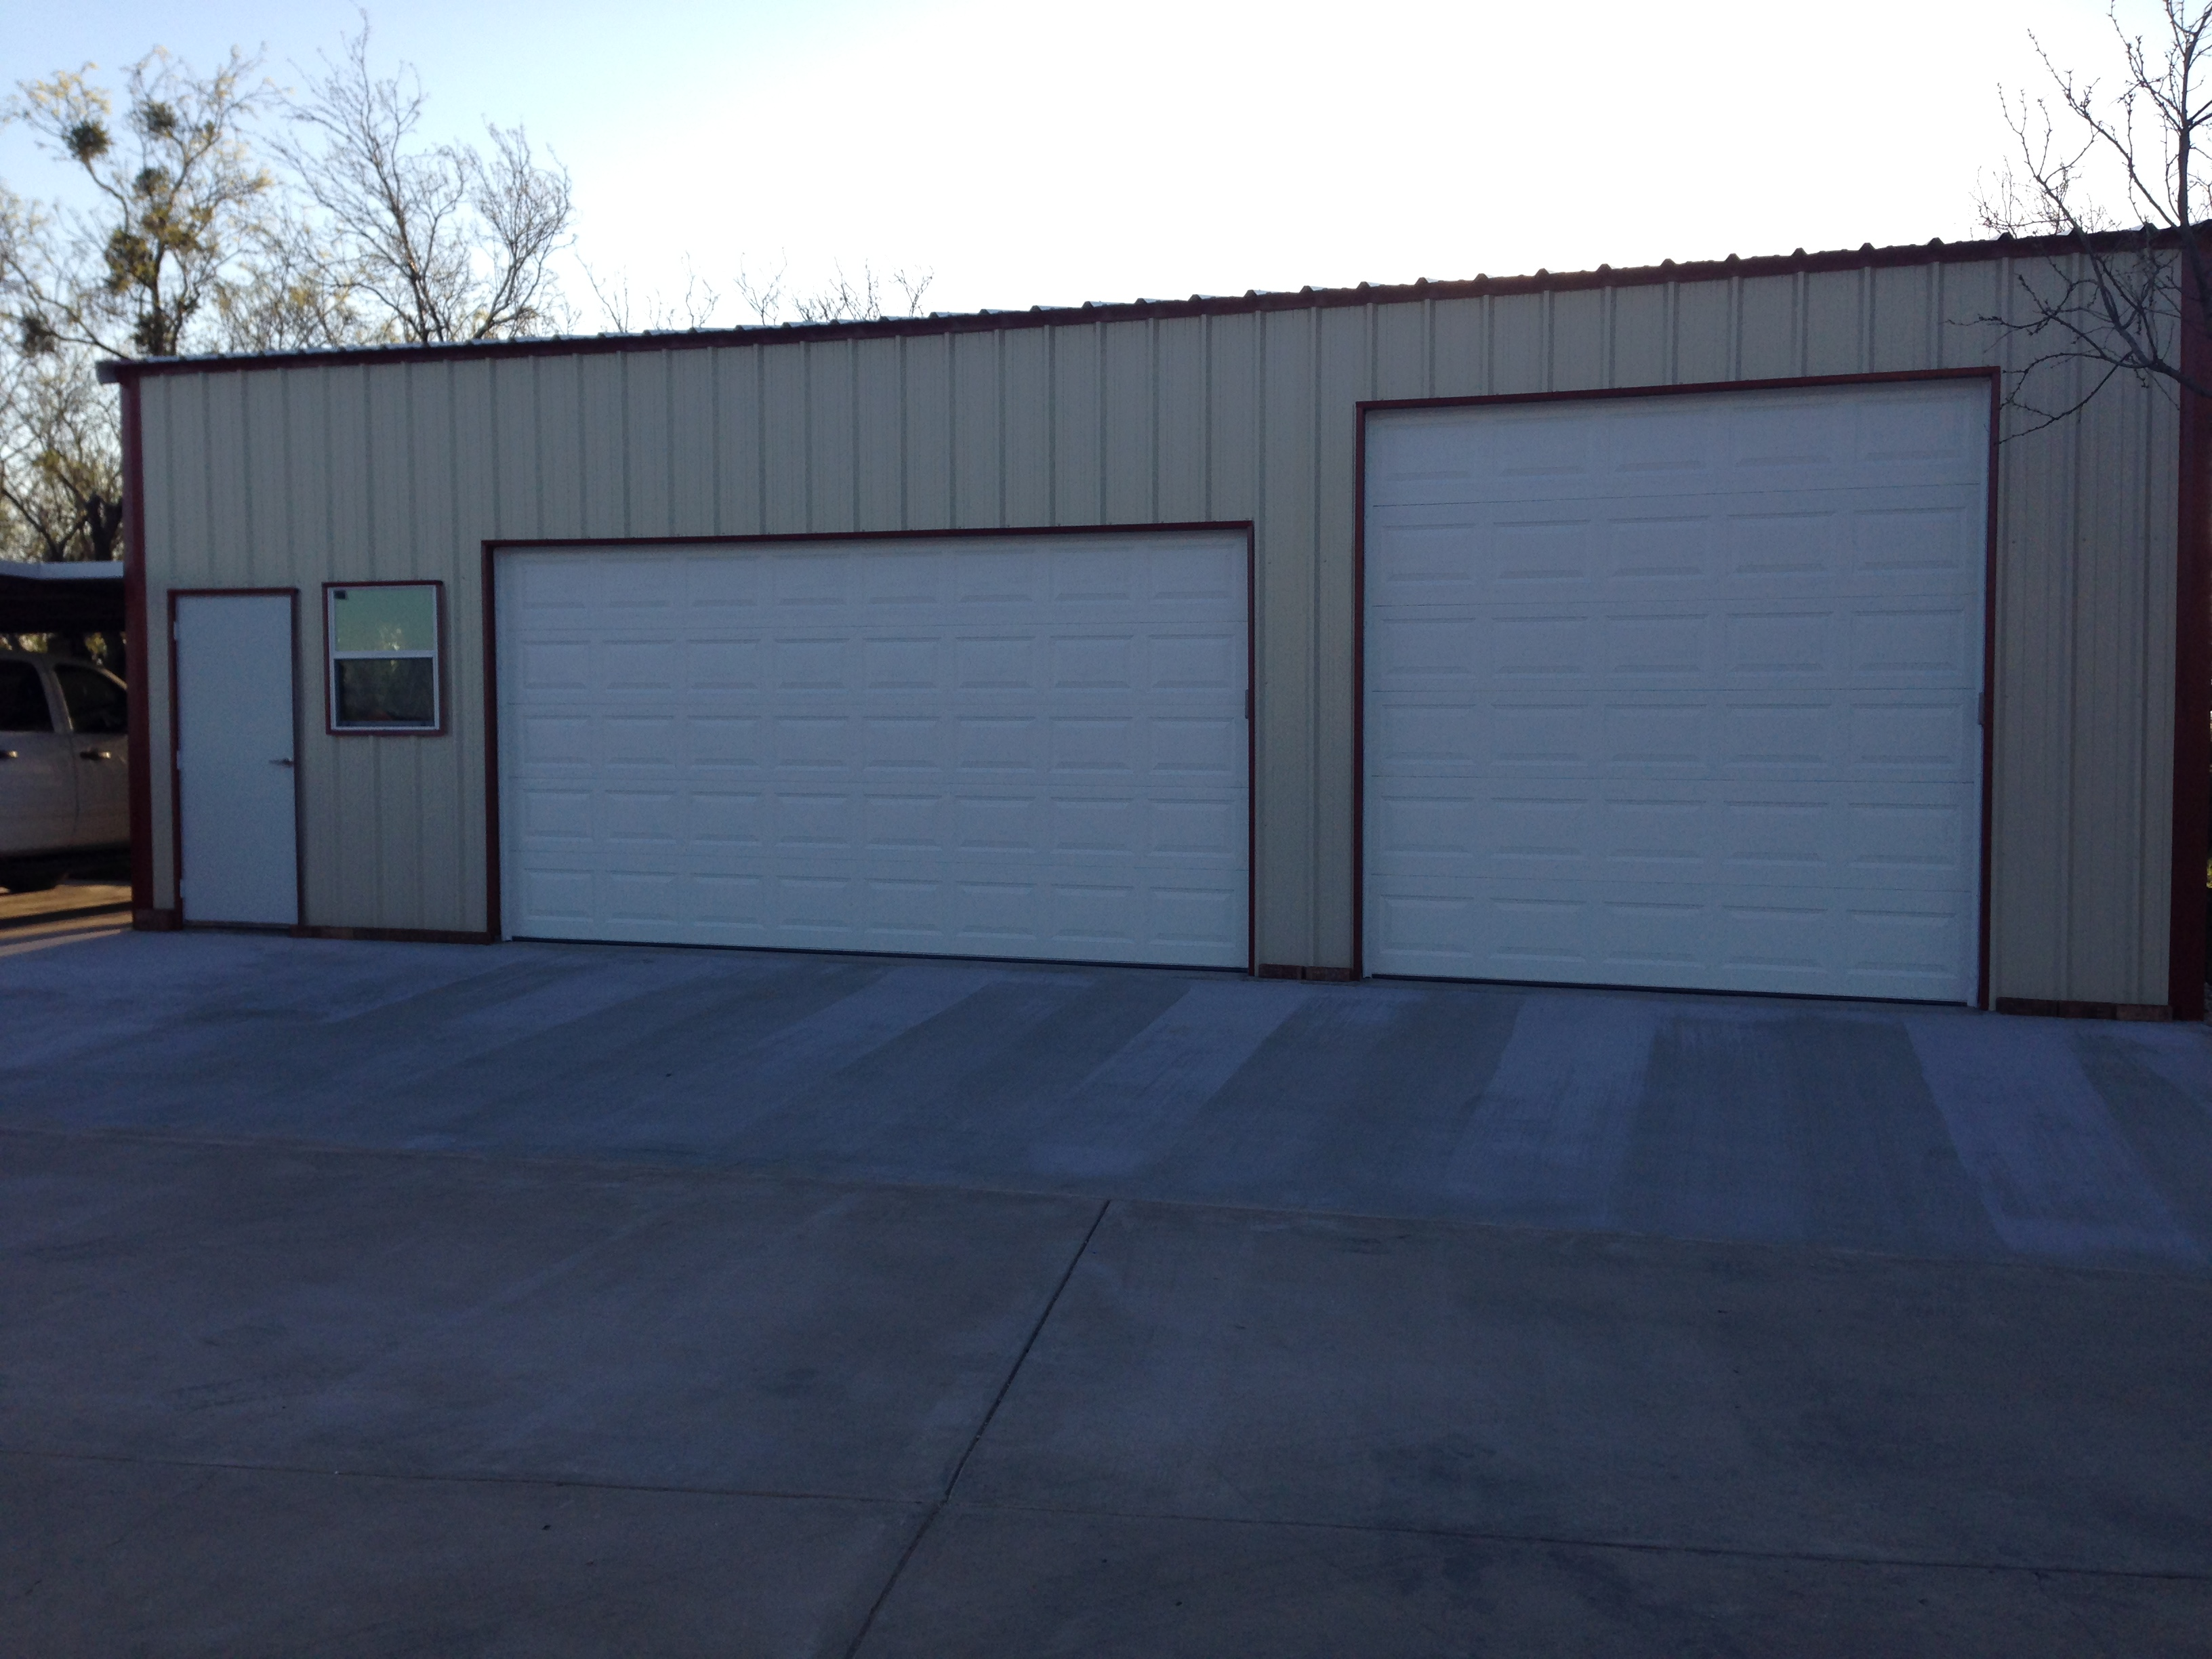 fiberglass grain x wood brilliant garage doors repair usa door builders chicago cool clothing